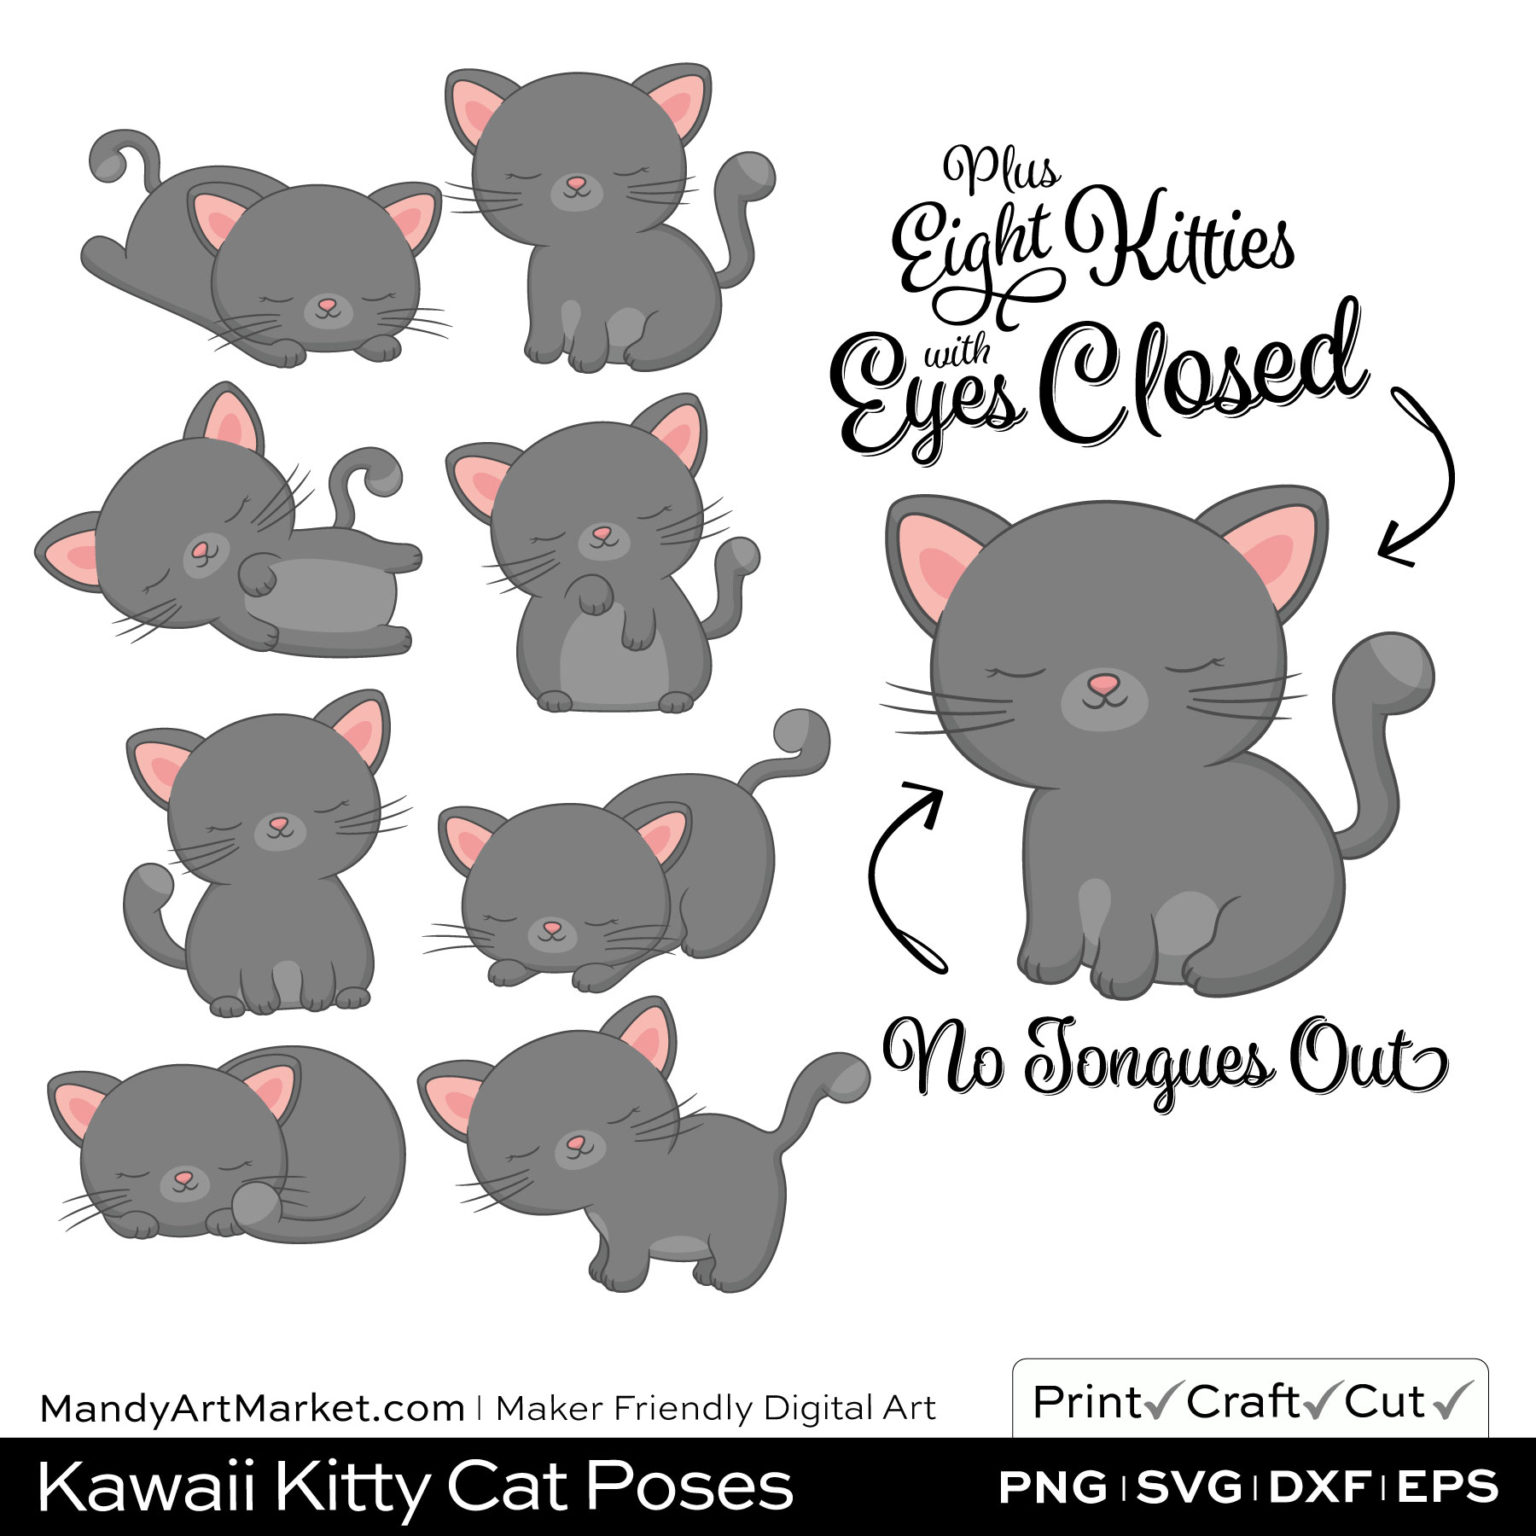 Pebble Gray Kawaii Kitty Cat Poses Clipart PNGs Included in Download